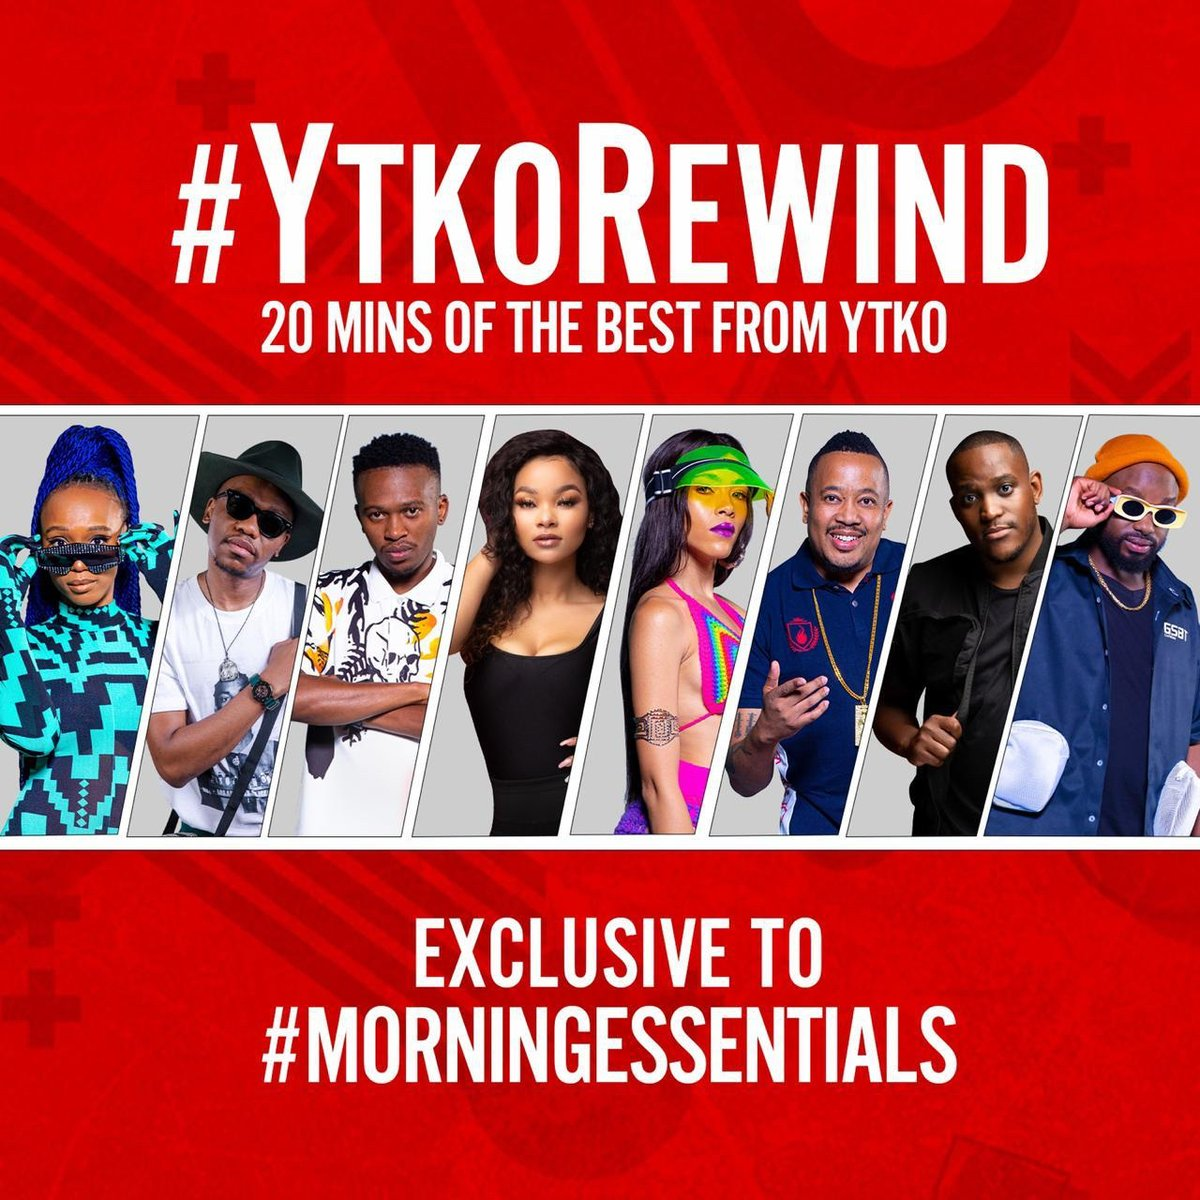 It's not really a weekend if you don't start it listening to a #YTKORewindMix 💃🏽💃🏽  Tune in now to listen to some of your favourite DJ's throw it down!! https://t.co/4X25glPDhC